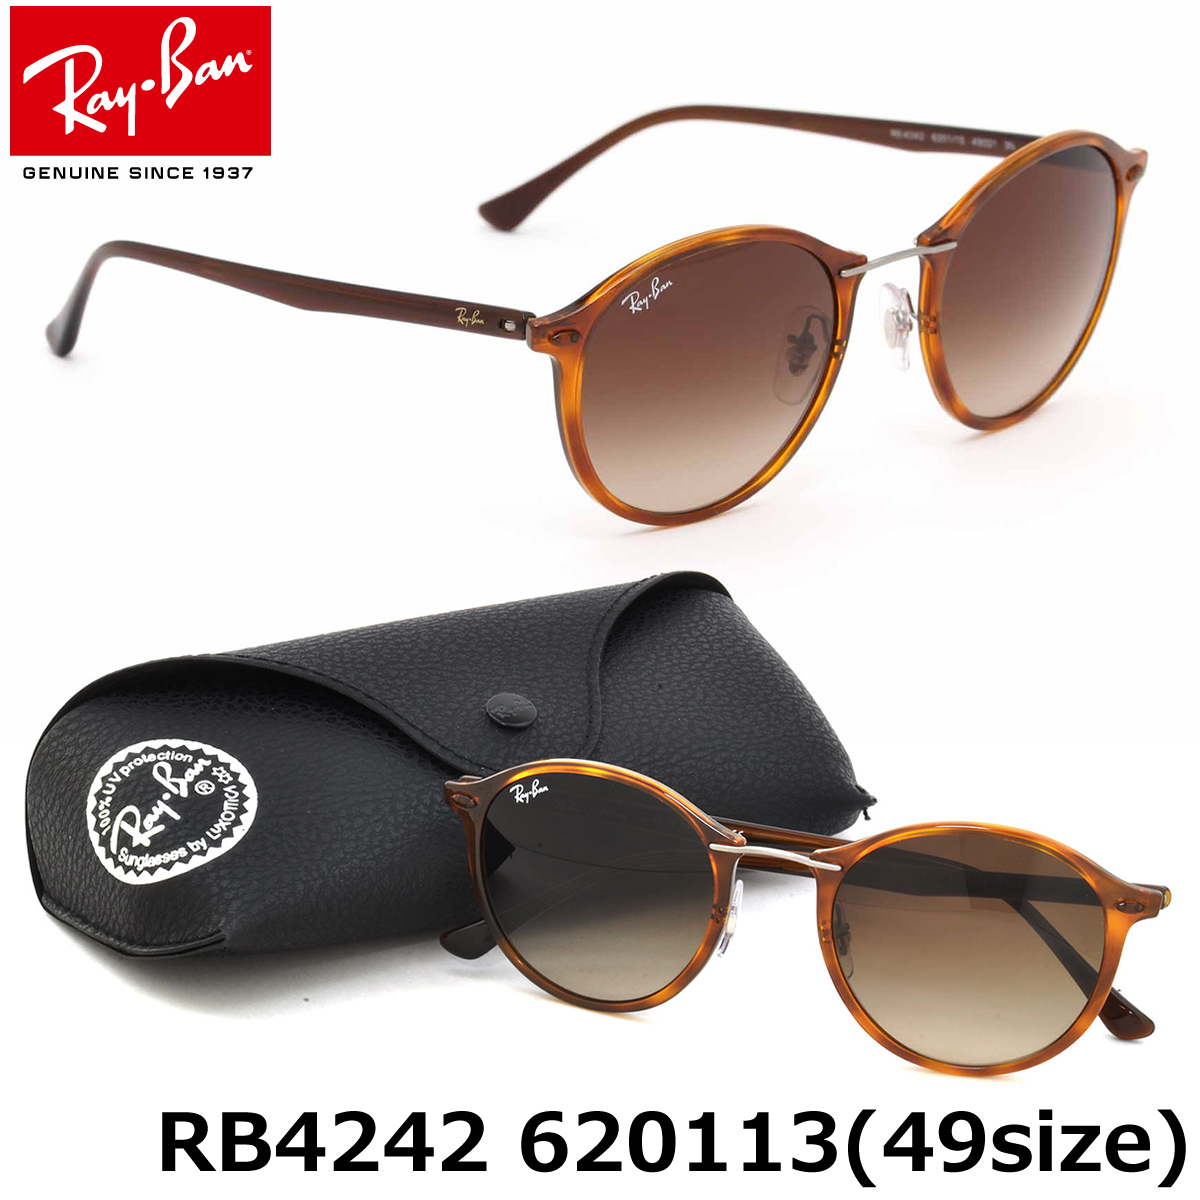 1e84af9210 Light Ray (light Ray) realized weight reduction Ray-Ban TECH (laybuntek)  combines the tradition of Ray-ban and the latest technology in the series.